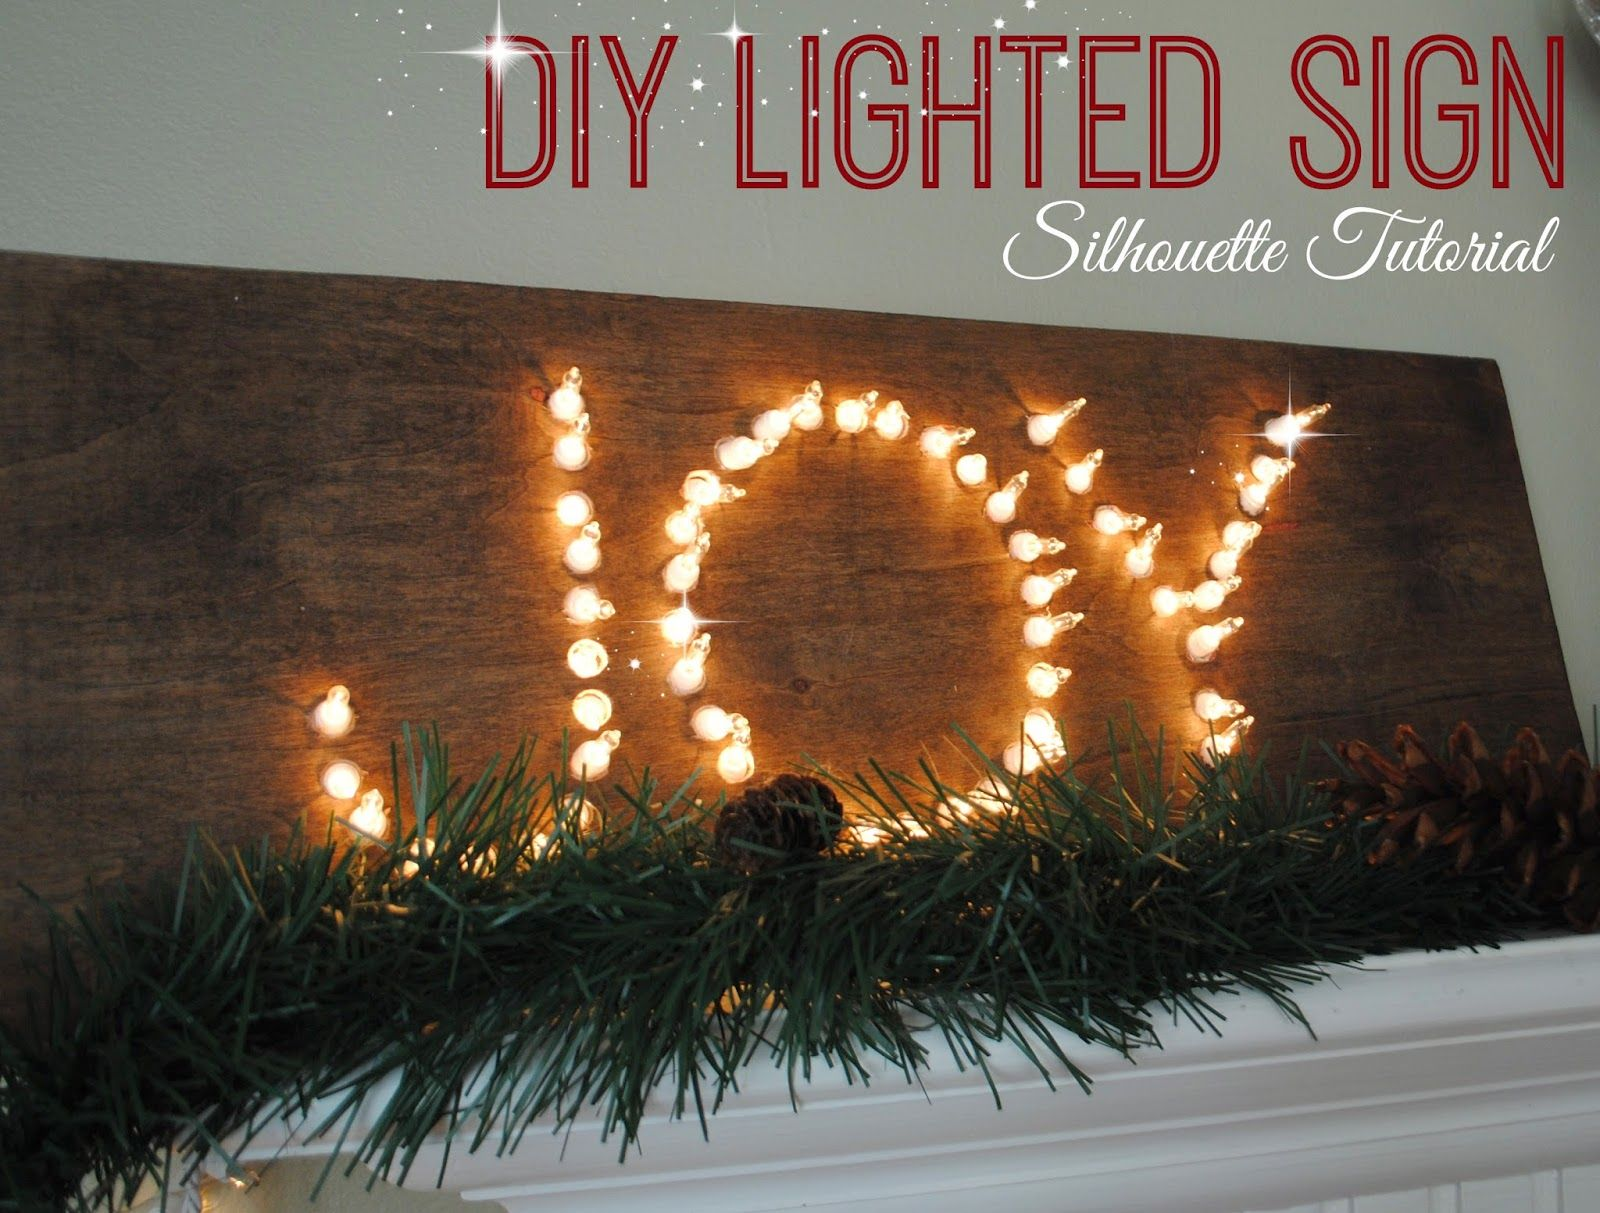 Diy Lighted Sign With Silhouette Tutorial Diy Holiday Decor Silhouette Tutorials Christmas Crafts